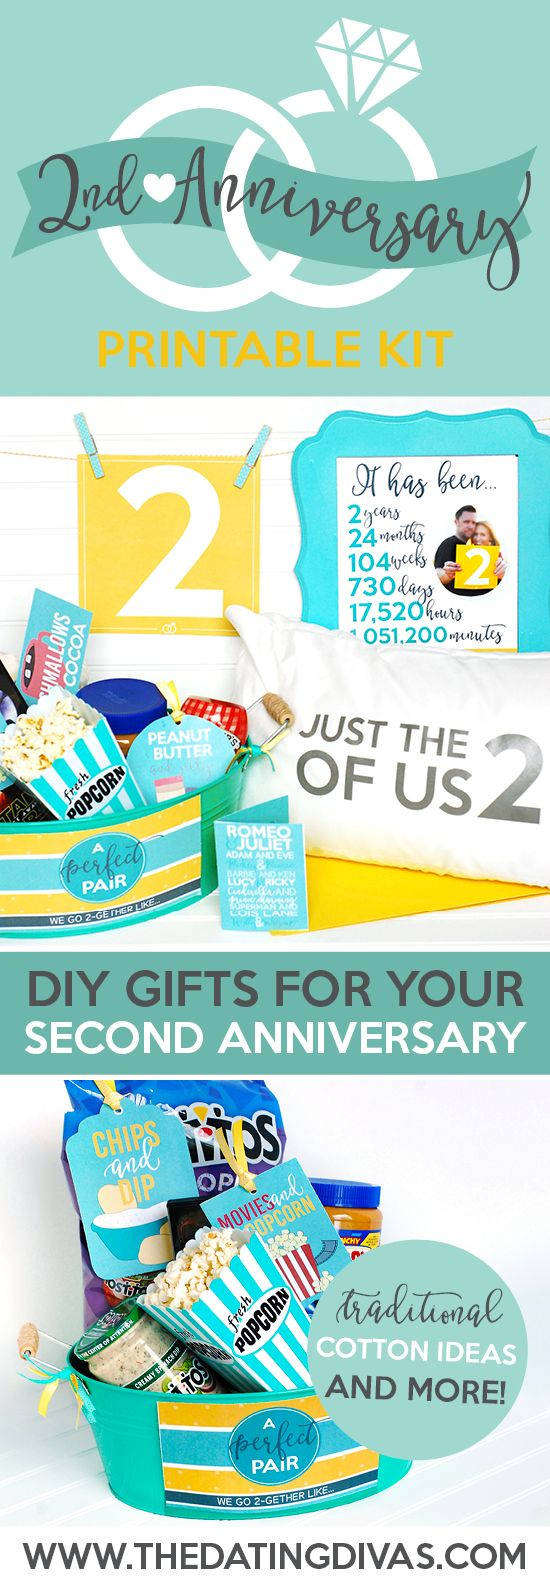 Second Anniversary Gift Printable Kit The Dating Diva